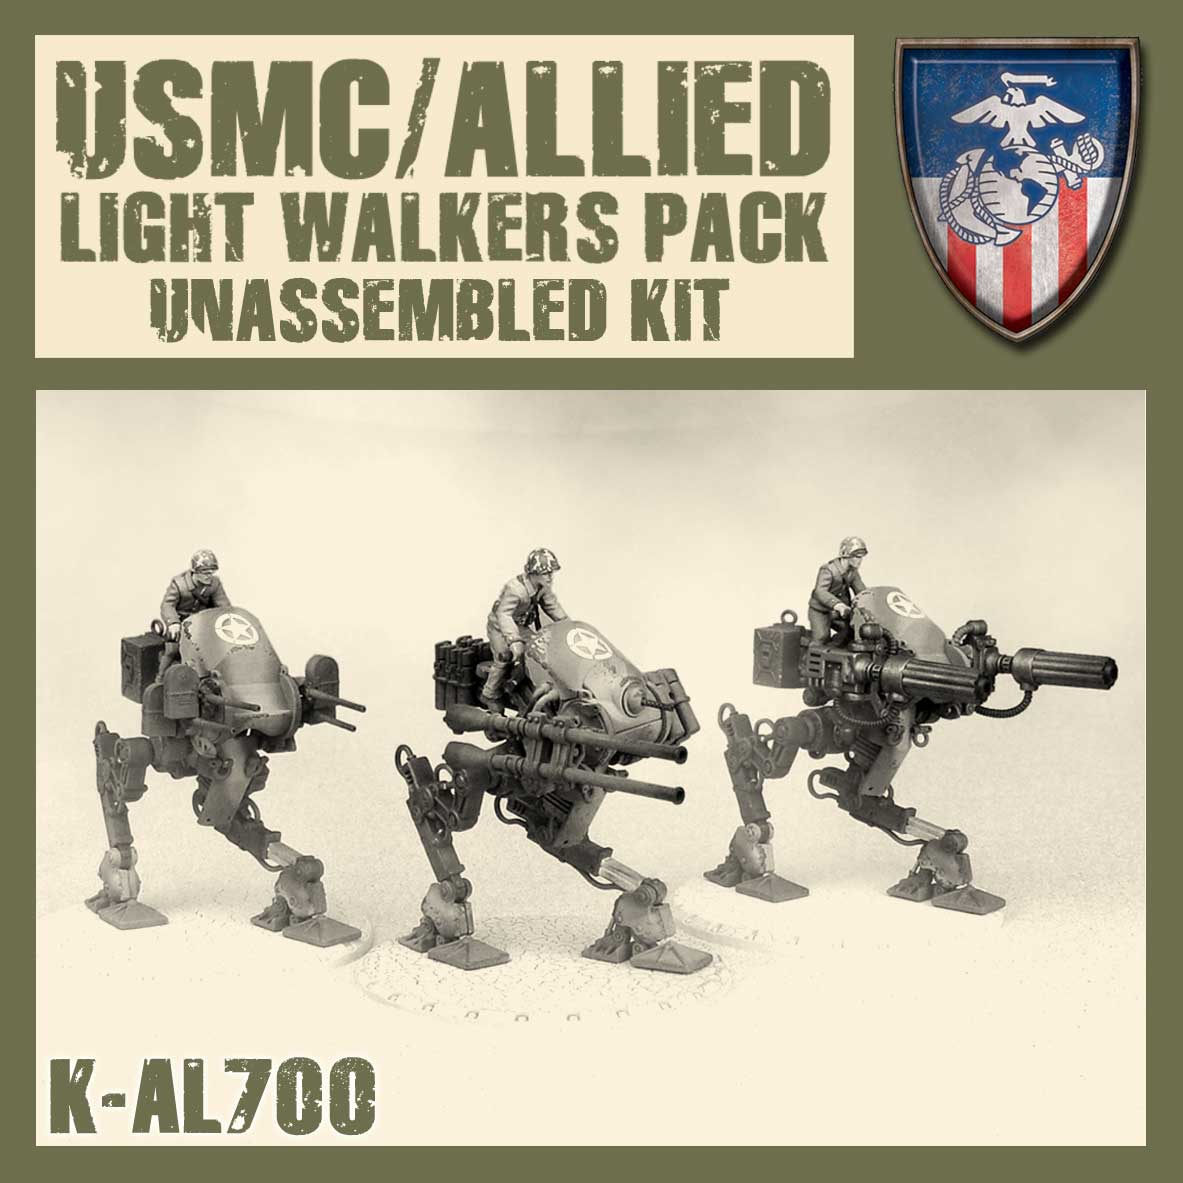 LIGHT WALKERS PACK - Kit